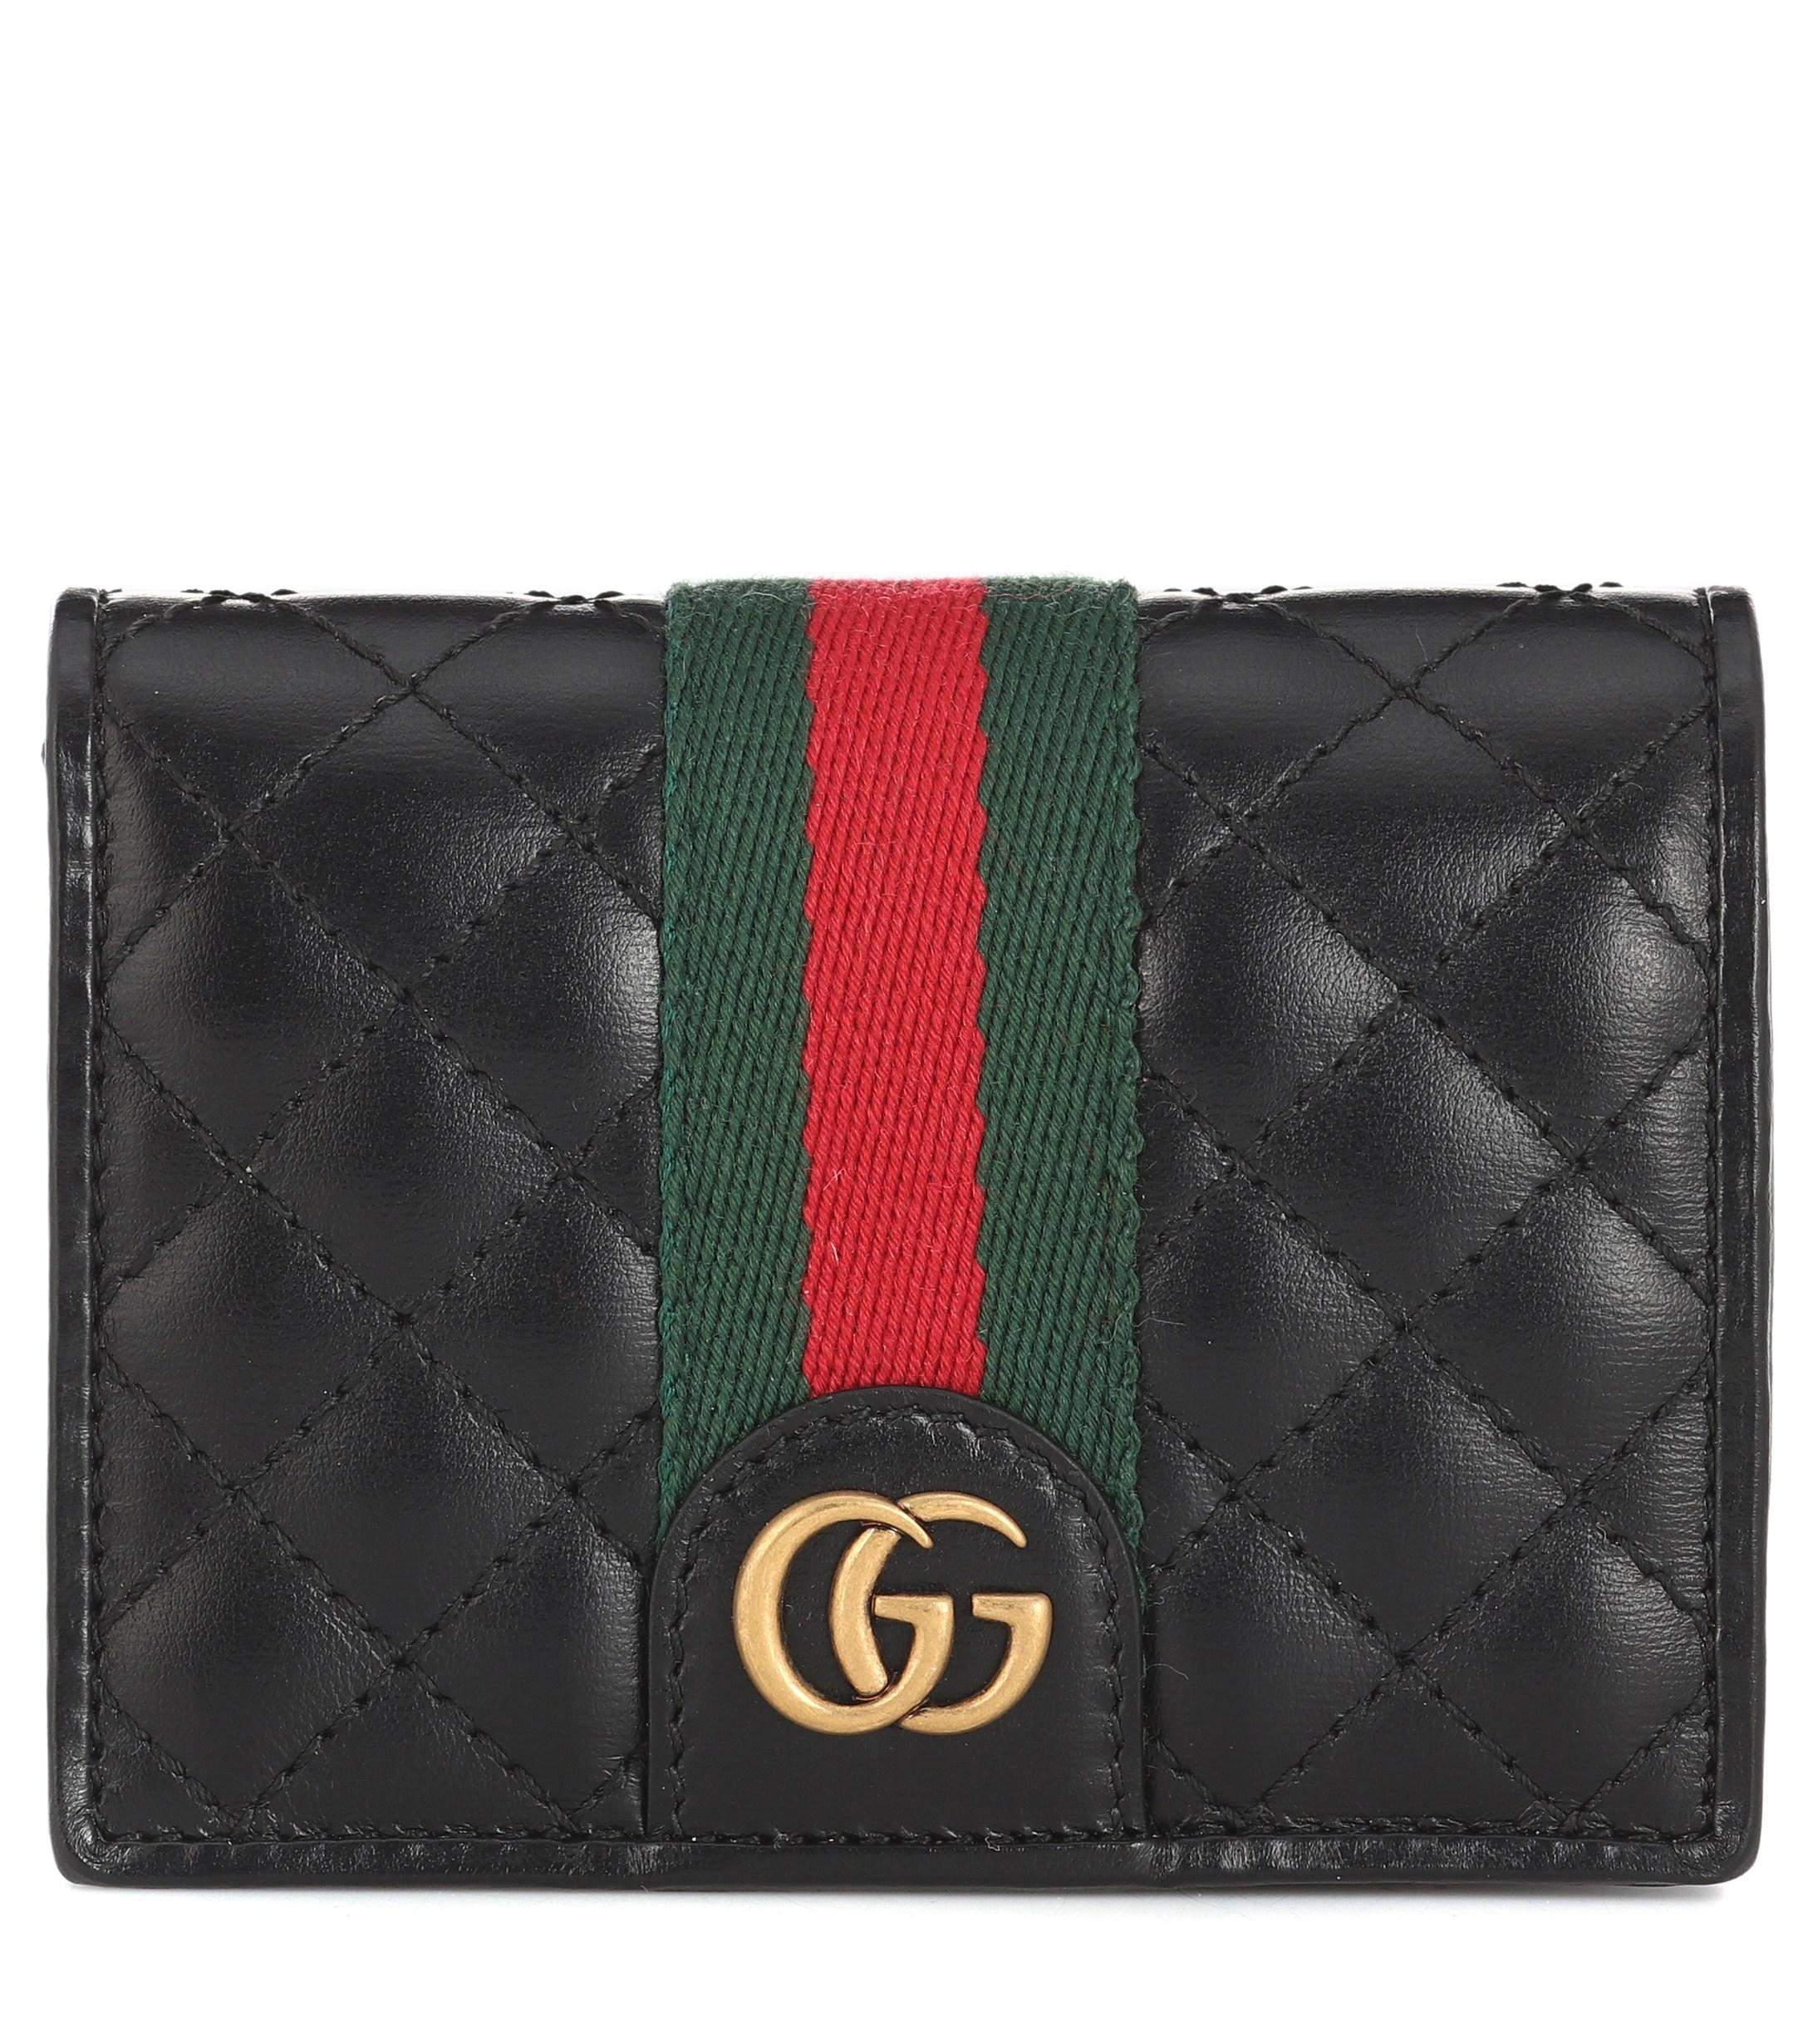 8a7defb1547 Lyst - Gucci Double G Leather Wallet in Black